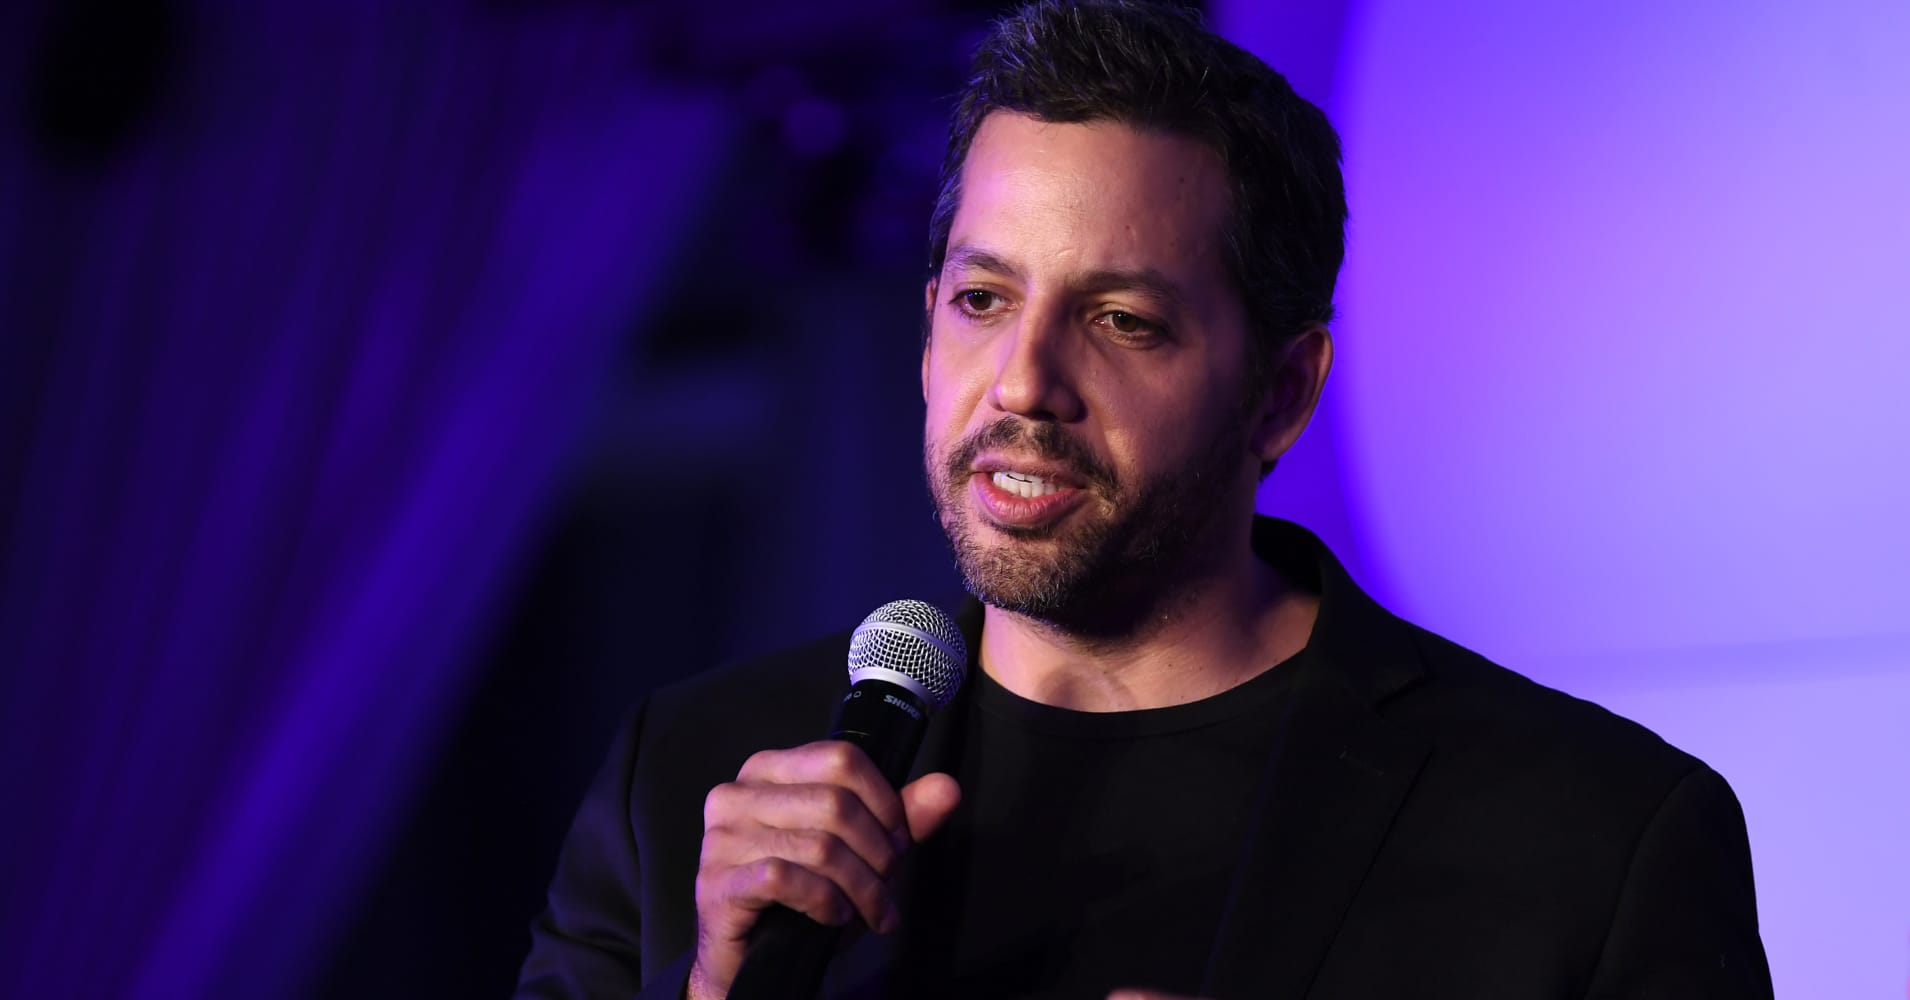 Millionaire magician David Blaine uses a simple $1 rule to make all his career decisions